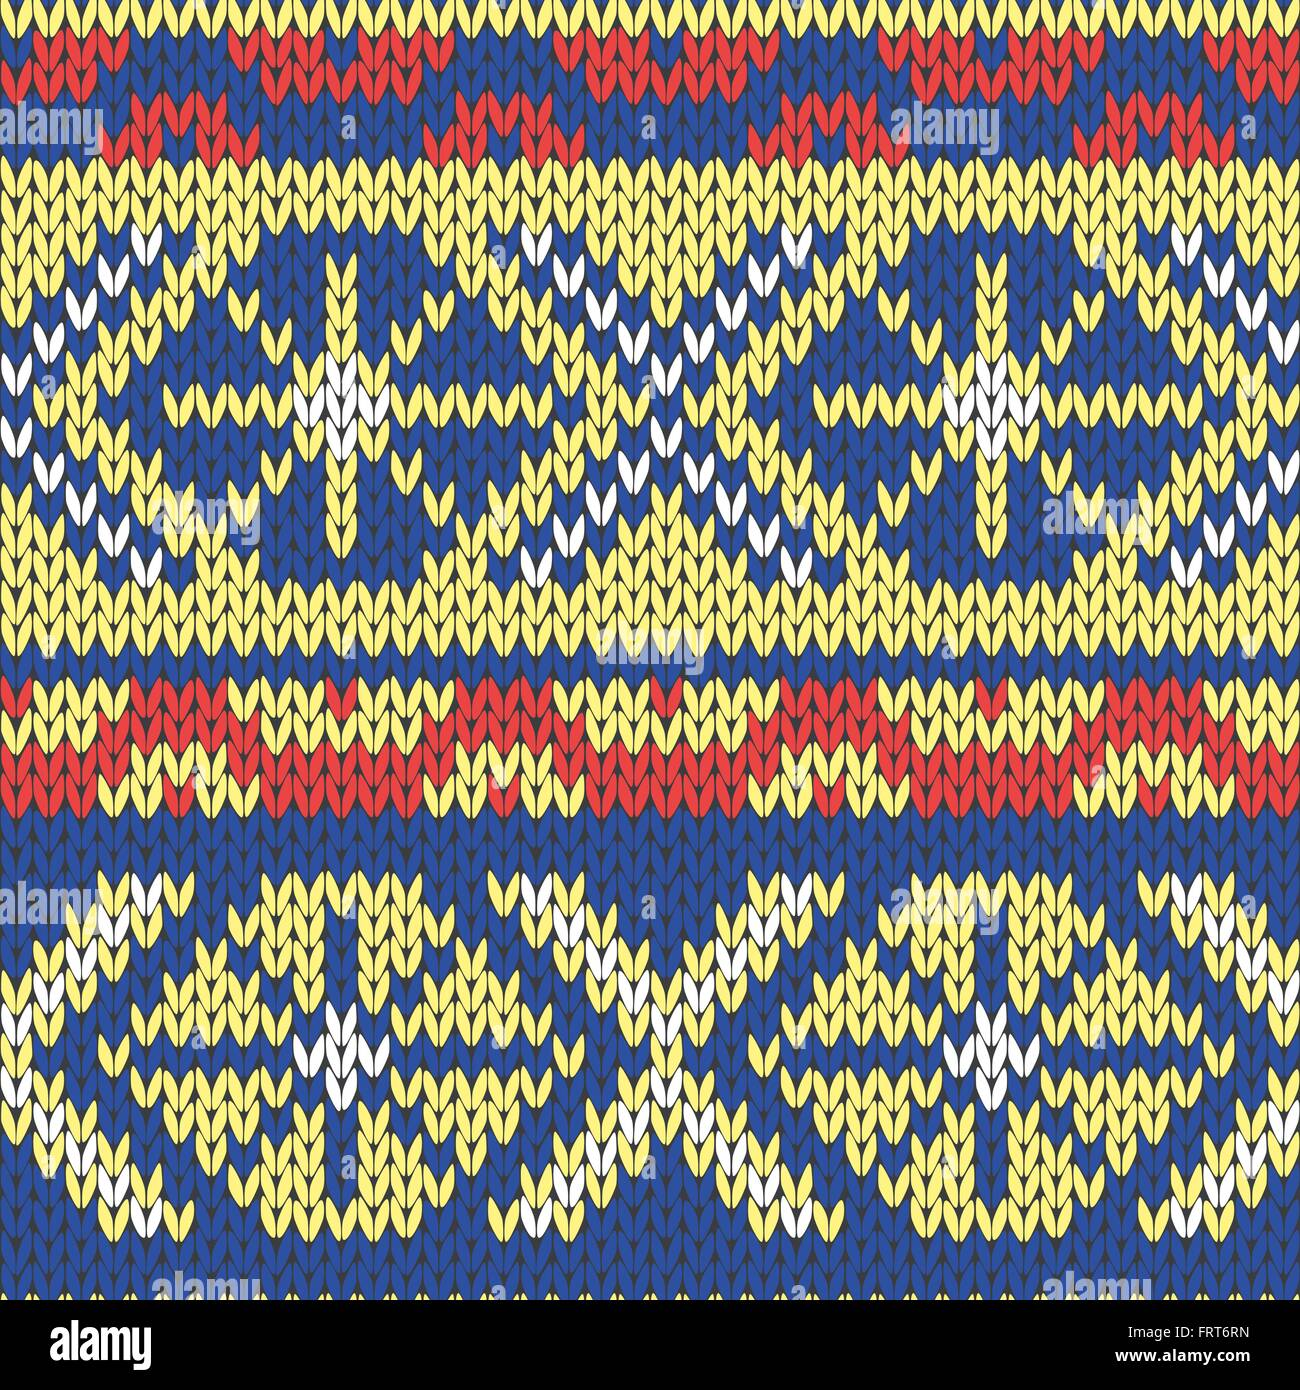 Abstract Ornamental Seamless Vector Pattern as a stylish Fabric Knitted ethnic texture in blue, yellow and red hues - Stock Vector